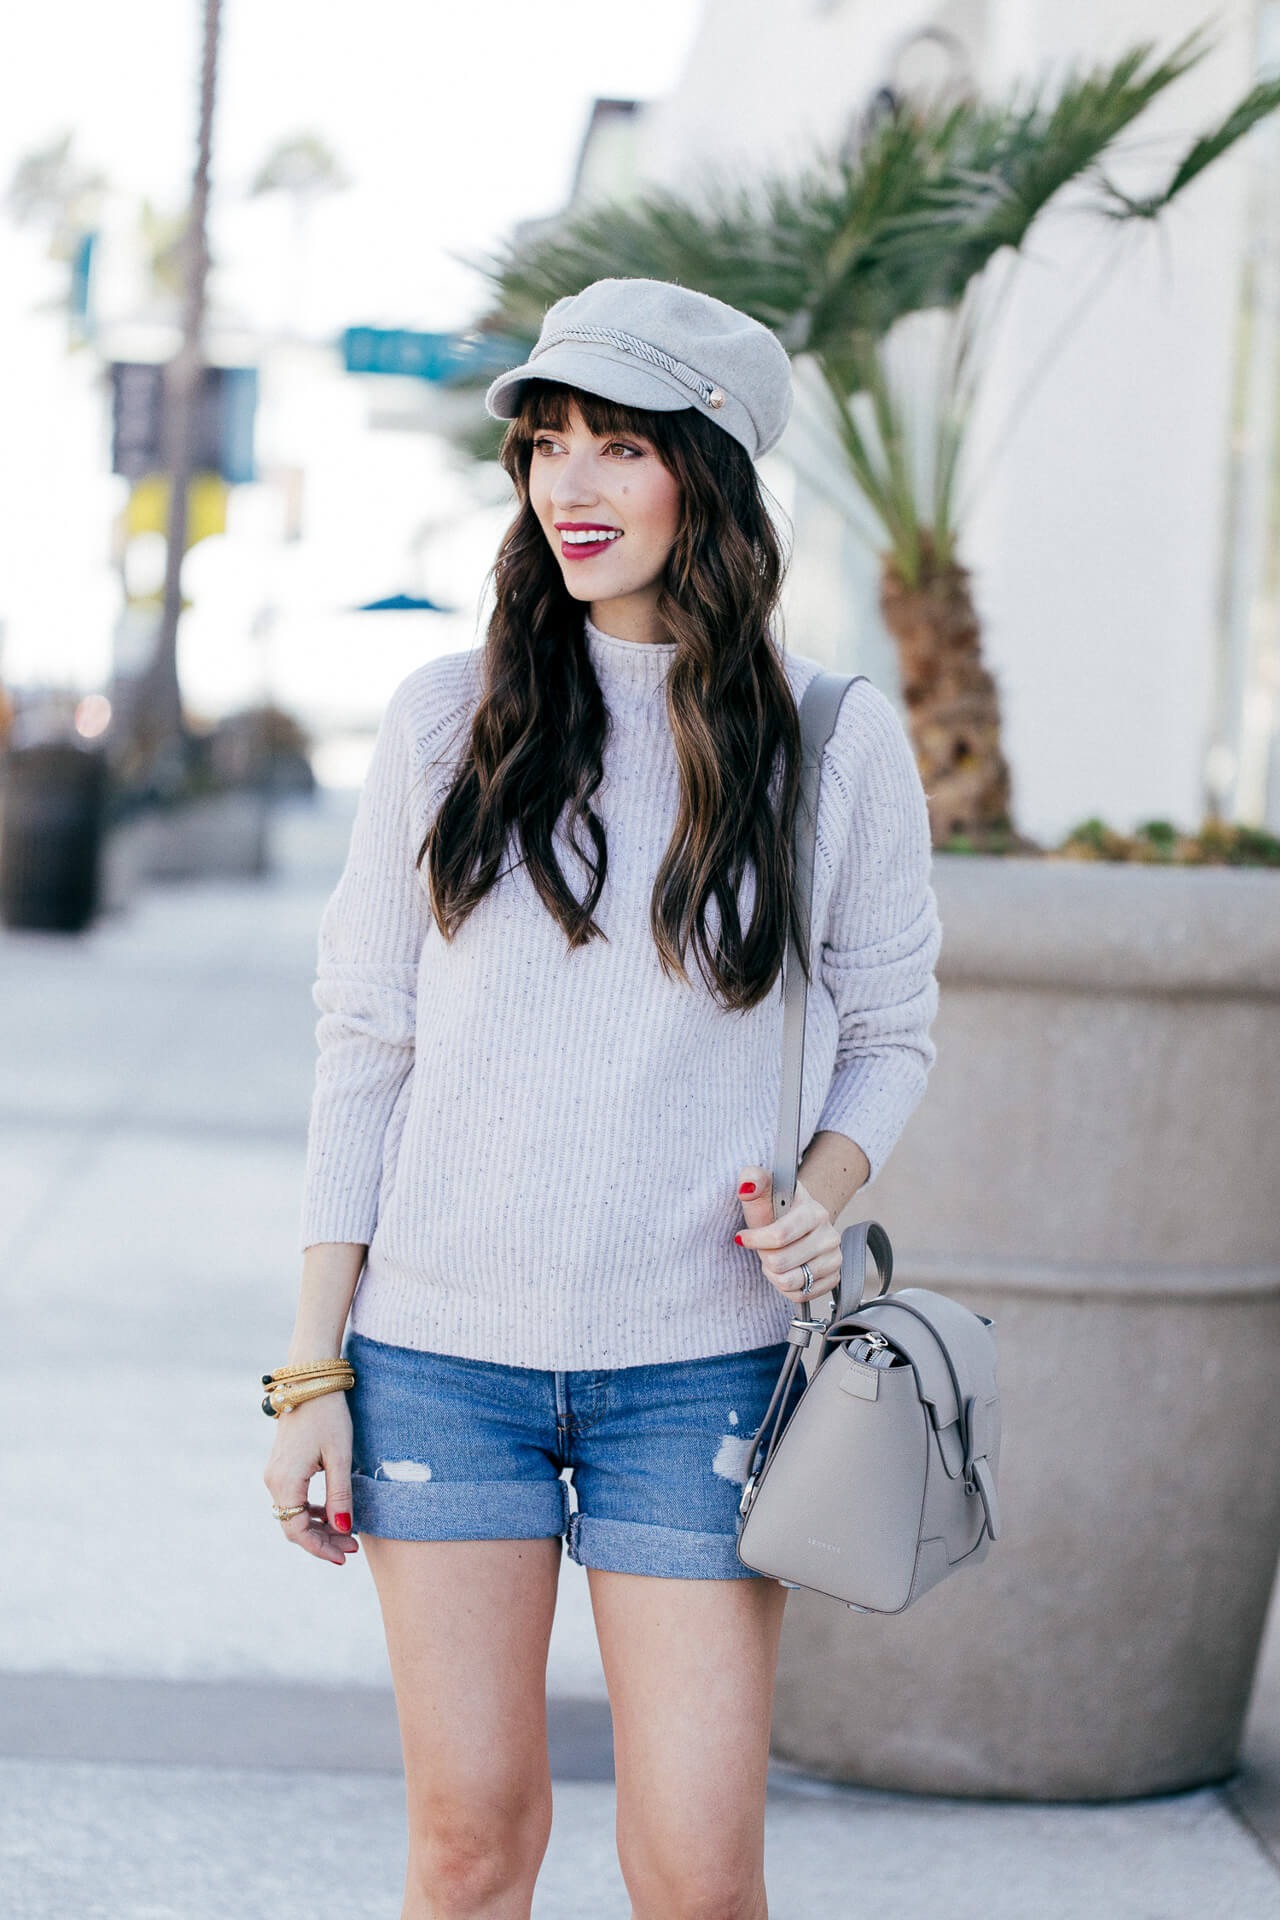 I love this outfit inspired by SoCal in fall! This newsboy cap is too cute!   M Loves M @marmar